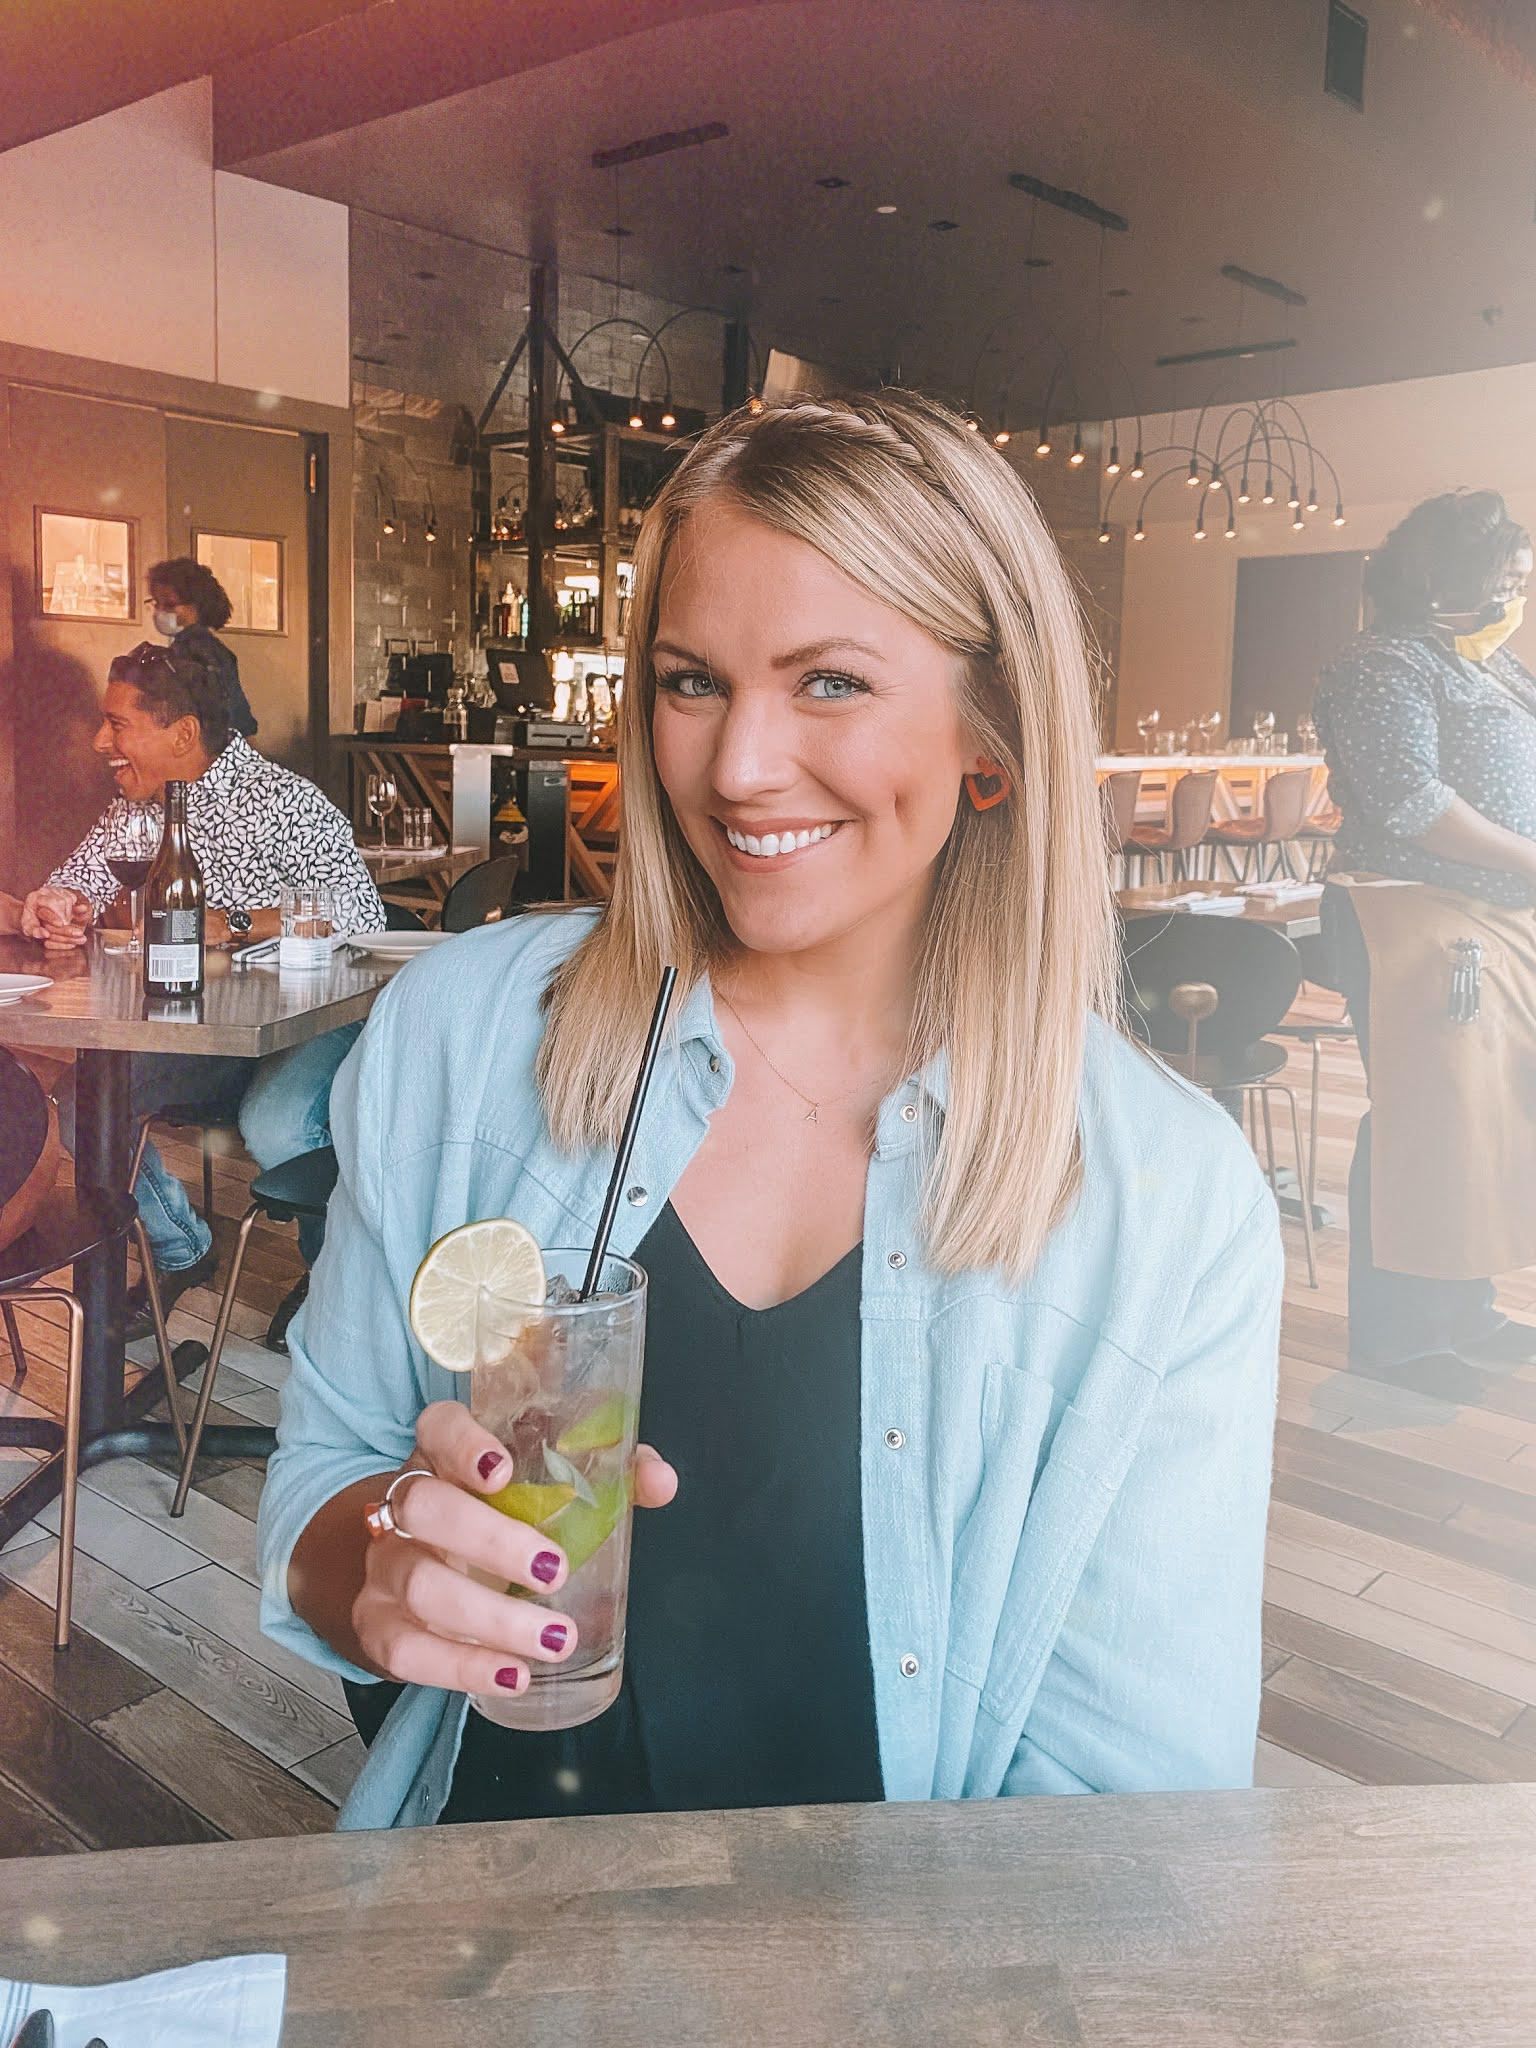 OKC blogger Amanda's OK sipping a cocktail at Black Walnut on date night